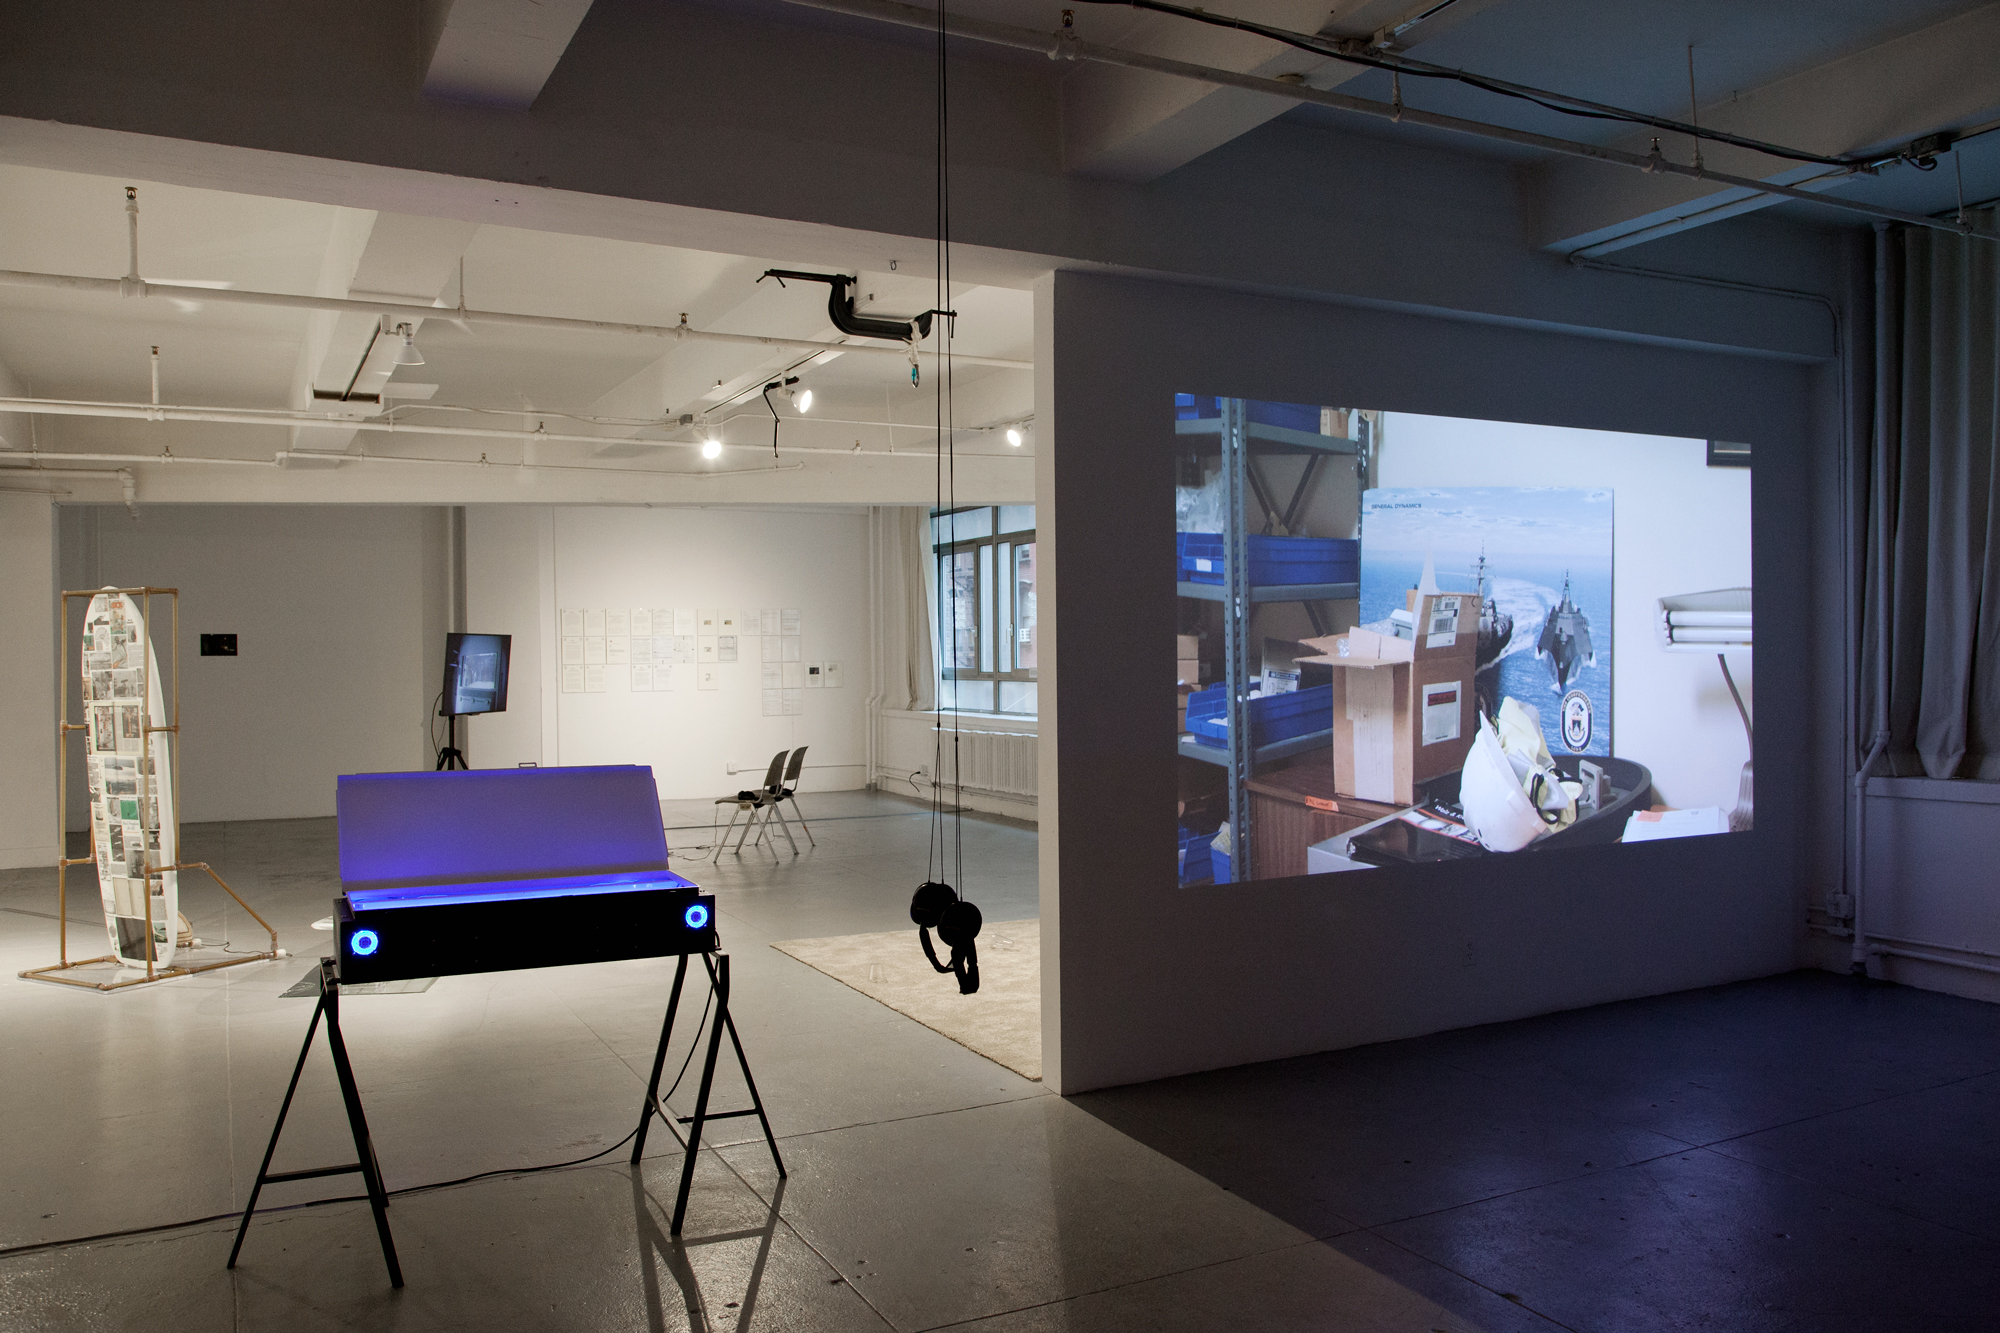 The Black Critique (Towards the Wild Beyond),  2017  Installation view (Elizabeth Foundation for the Arts, NY), Photo: Martha Fleming-Ives